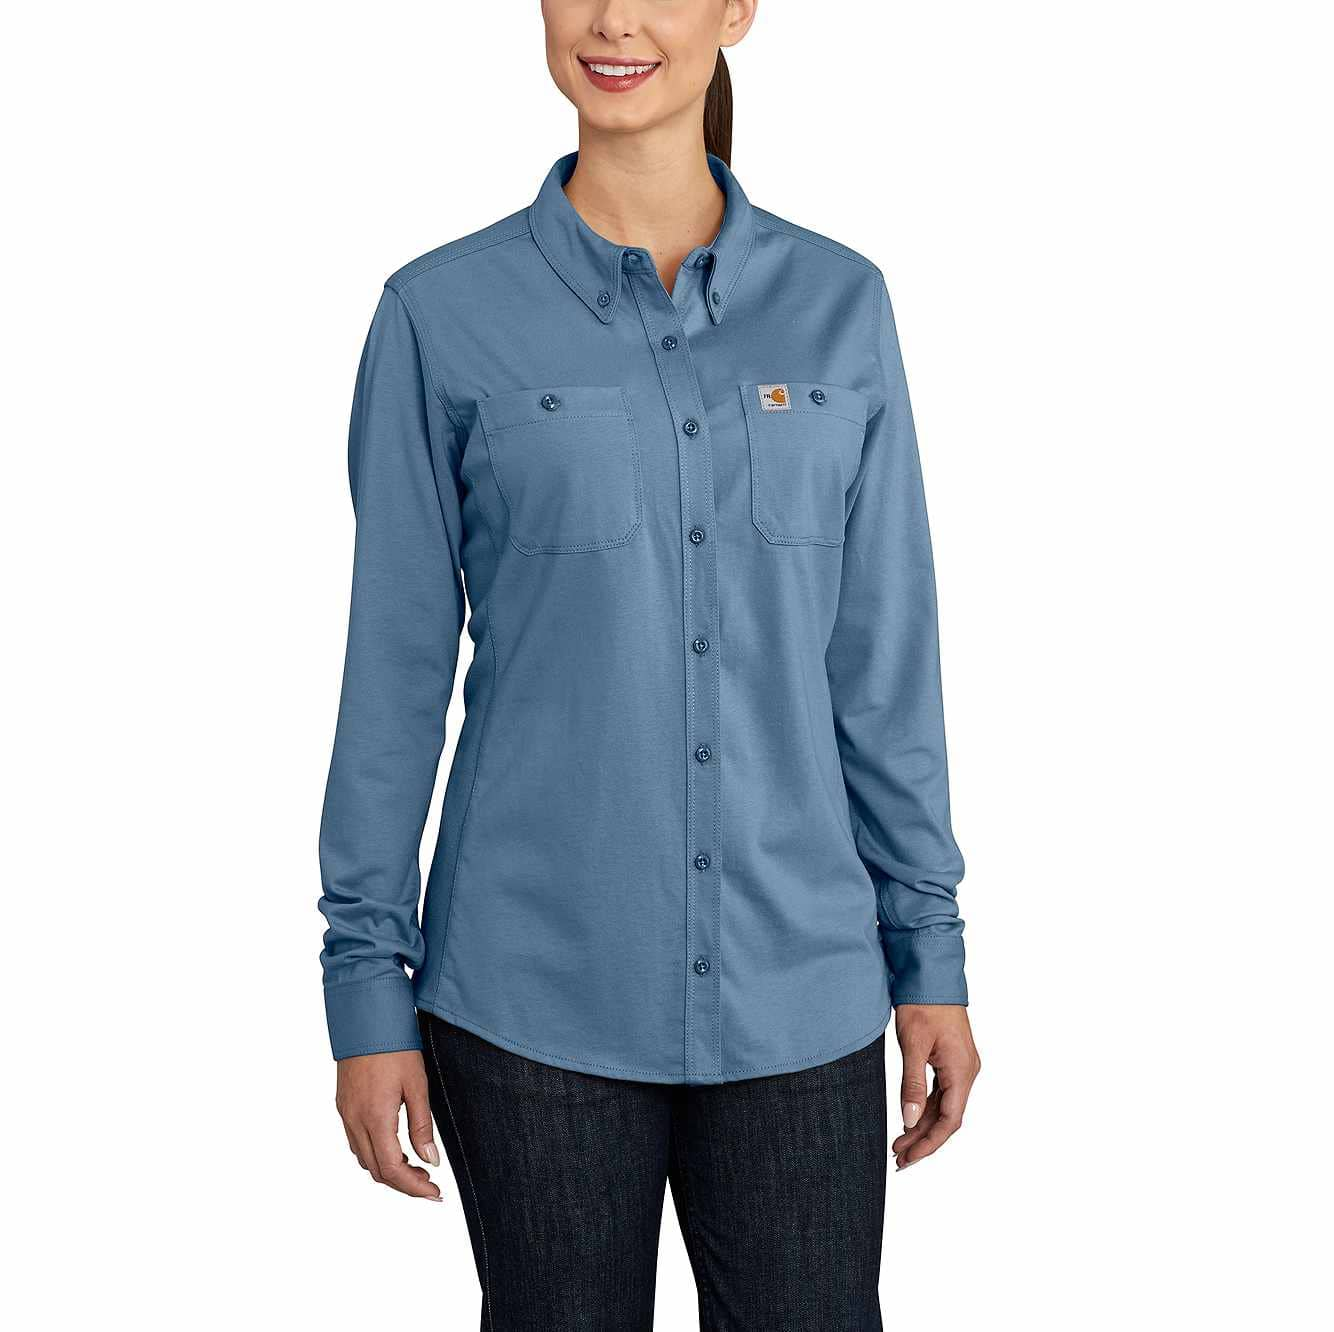 Picture of Women's FR Force Cotton Hybrid Shirt in Medium Blue